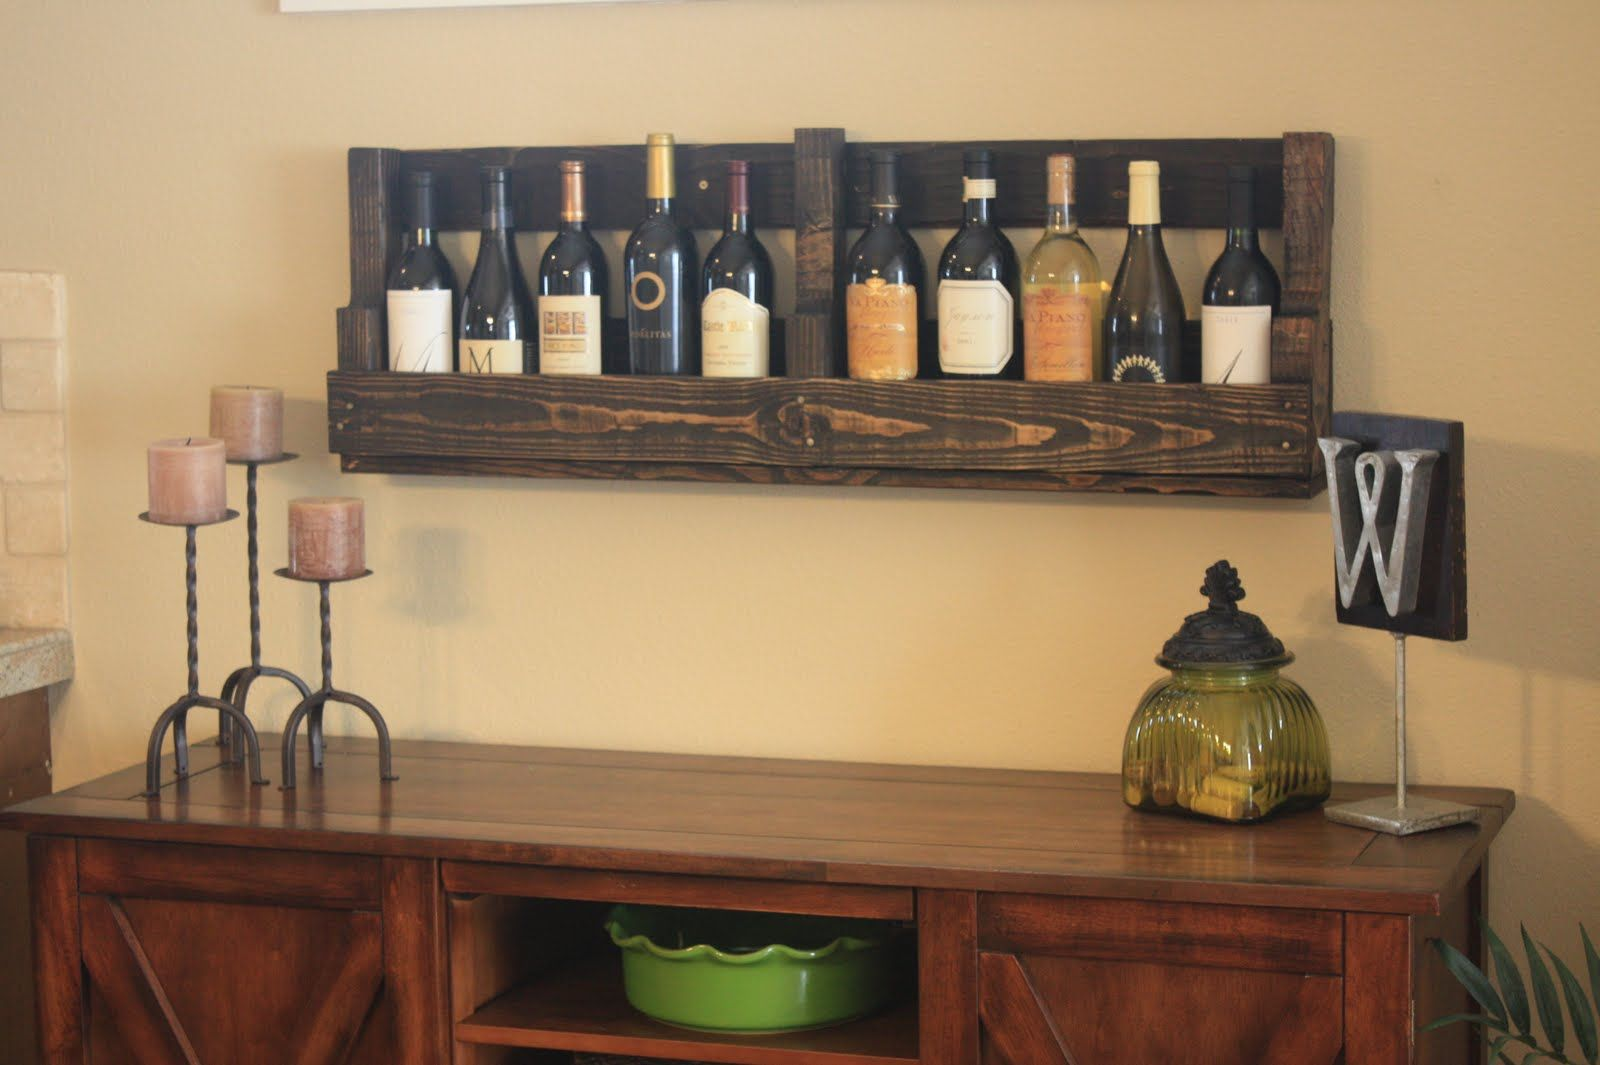 This would be perfect in our bar for liquor bottles instead of our ...